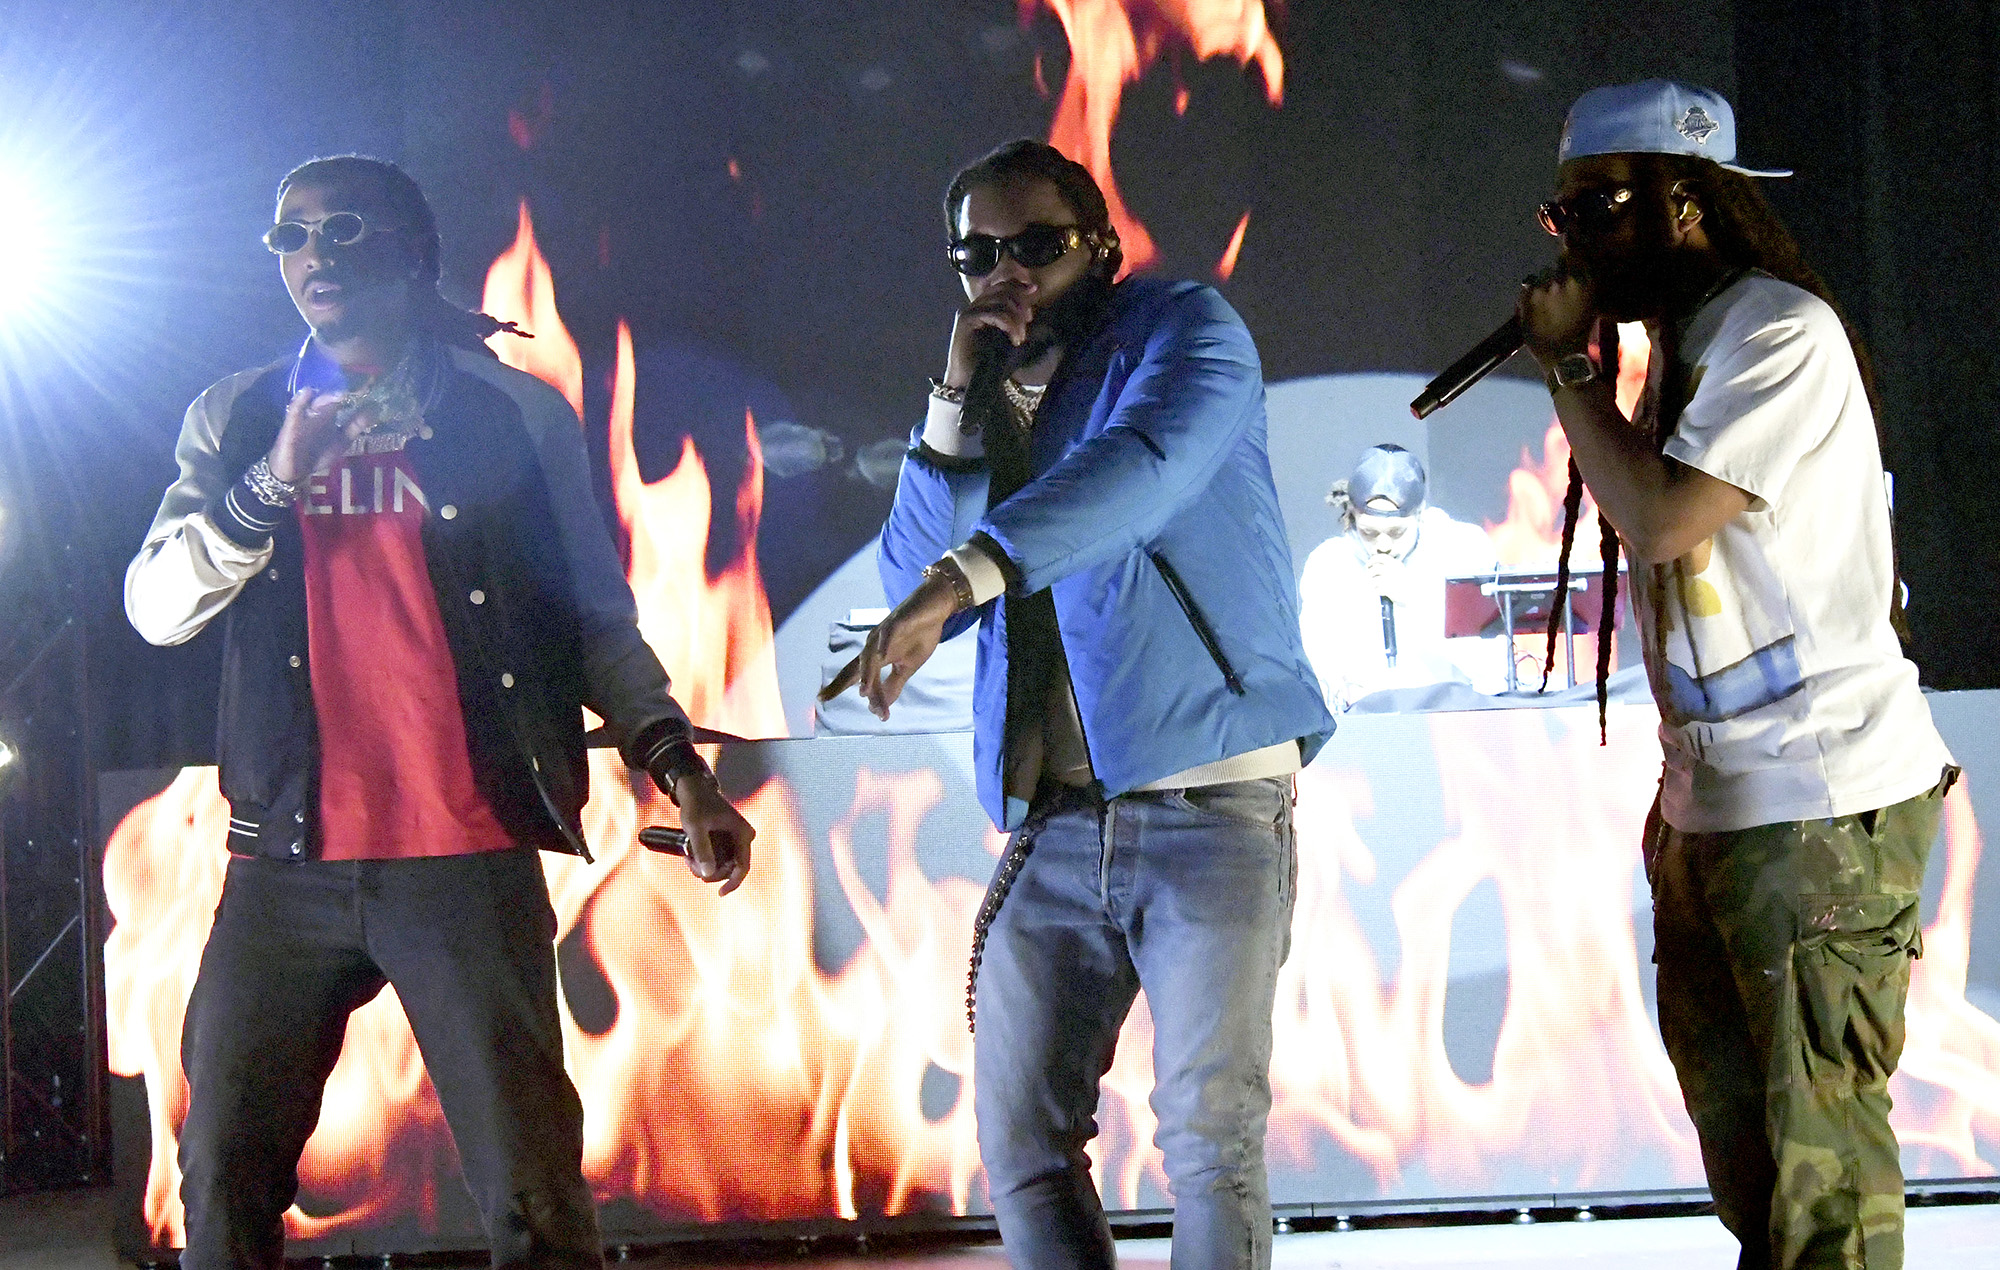 Quavo, Offset, and Takeoff of Migos perform during The SHAQ Bowl for Super Bowl LV in 2021